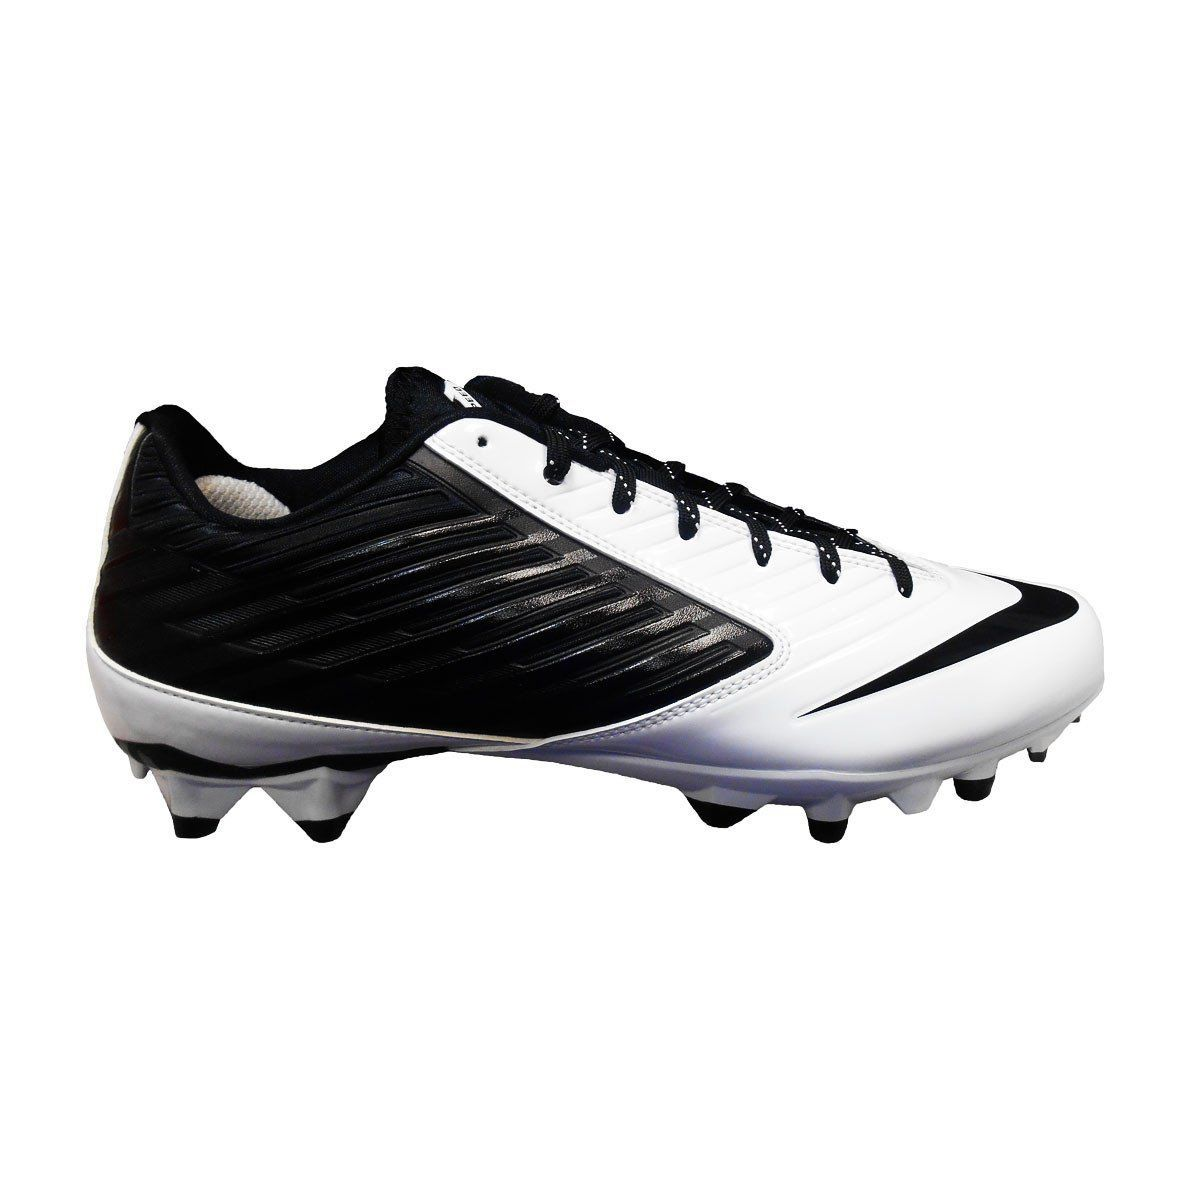 7a36cc2d966f Nike Vapor Speed Low TD Football Cleats | Products | Nike Vapor ...